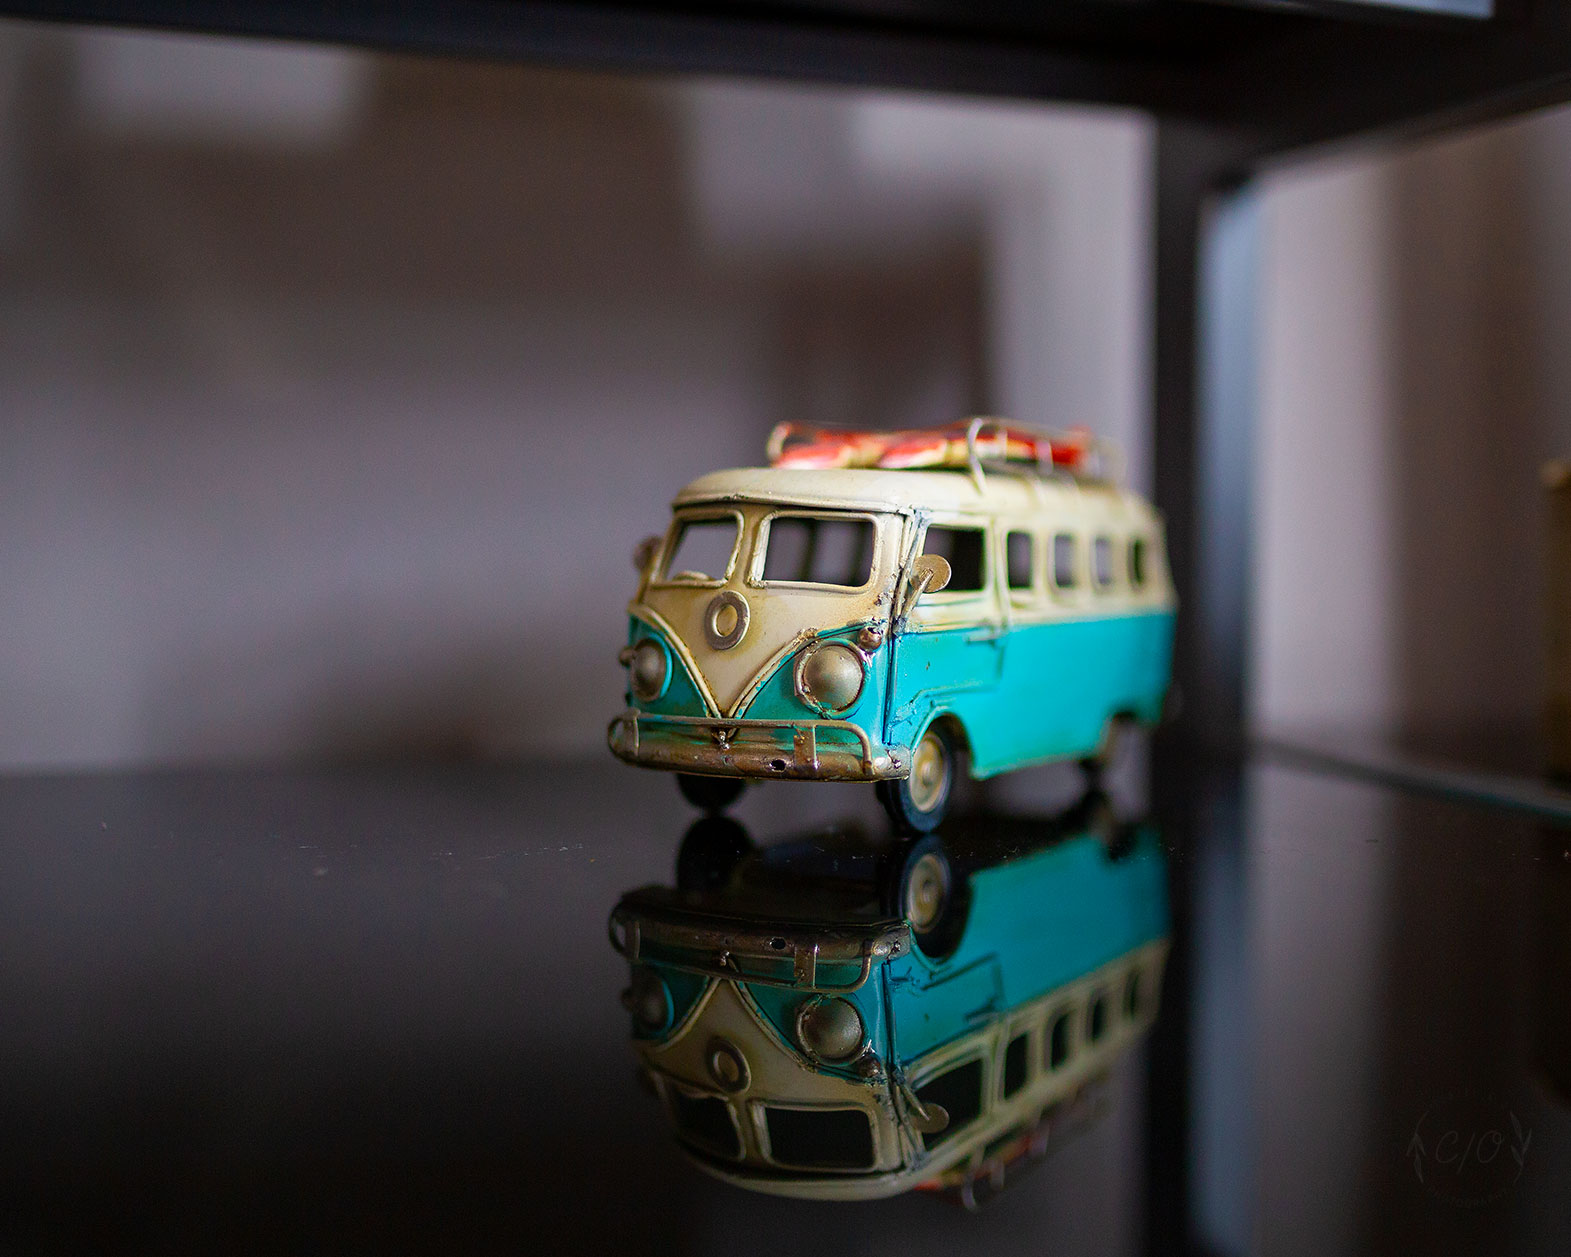 A Photograph of a Toy Kombi on a reflective surface